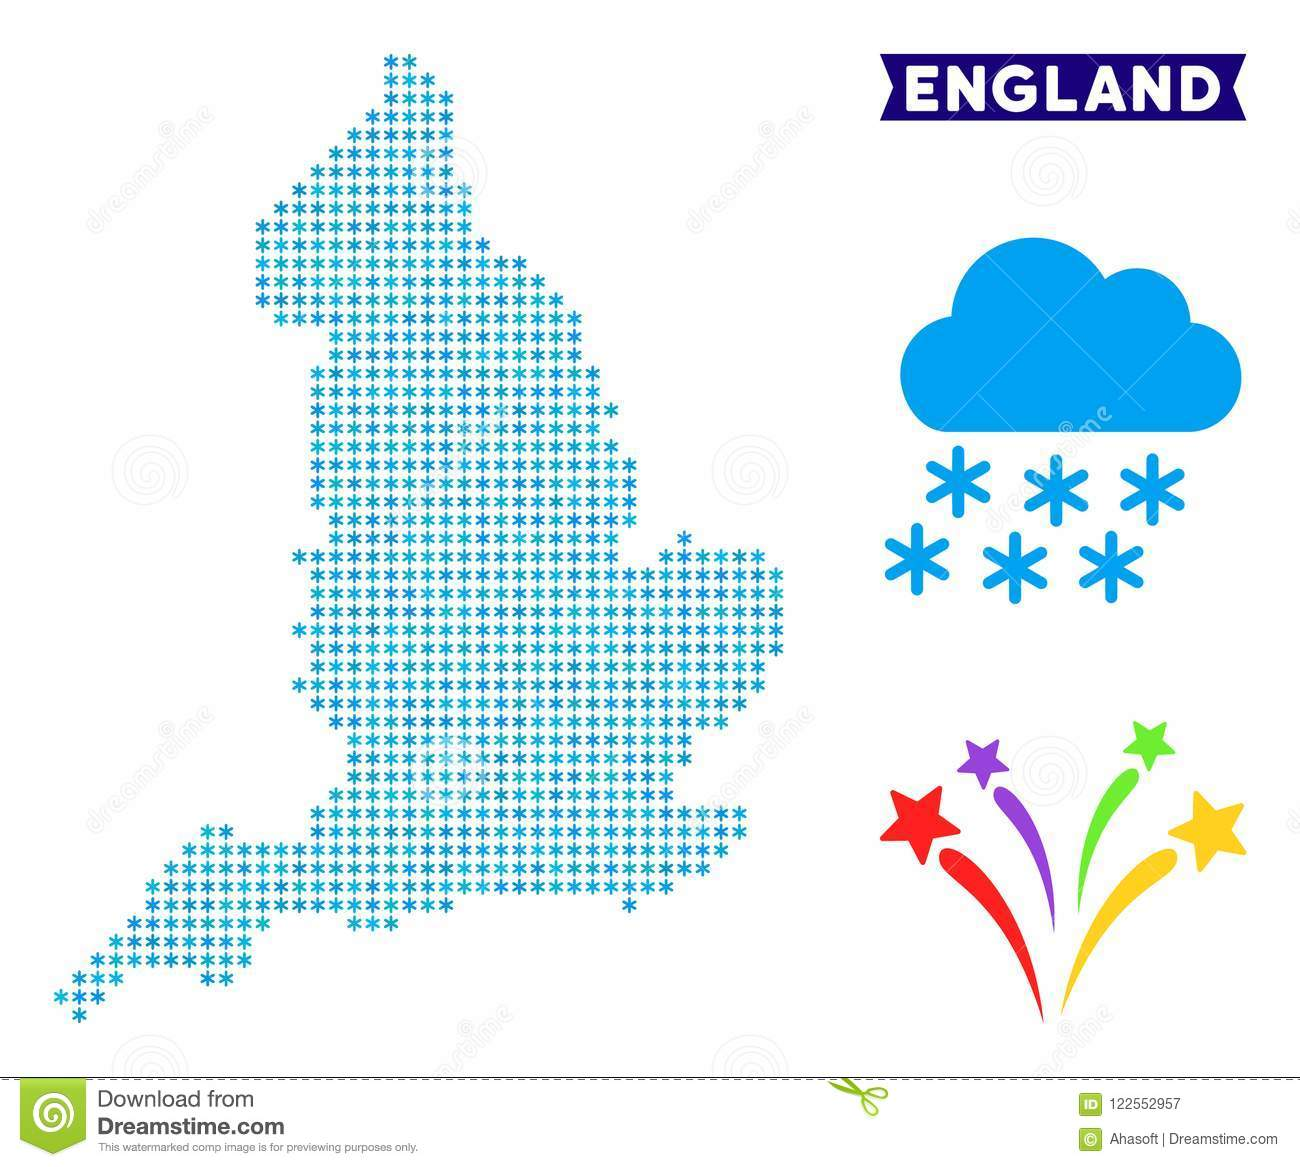 Frozen England Map Stock Vector Illustration Of Location 122552957